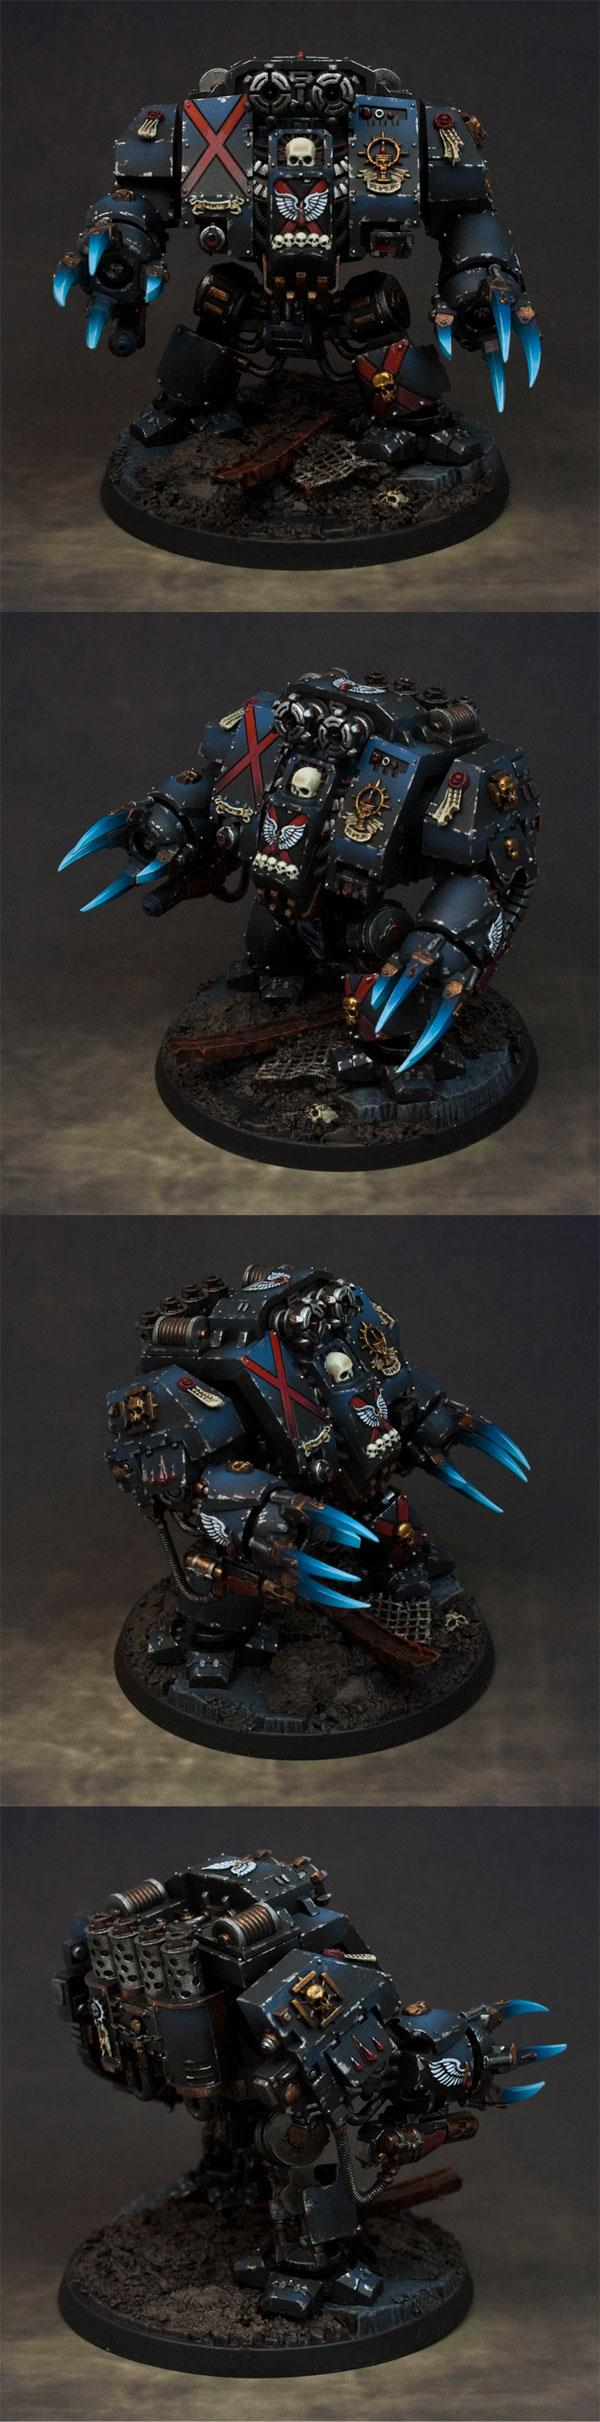 Blood Angels, Dreadnought, Space Marines, Warhammer 40,000